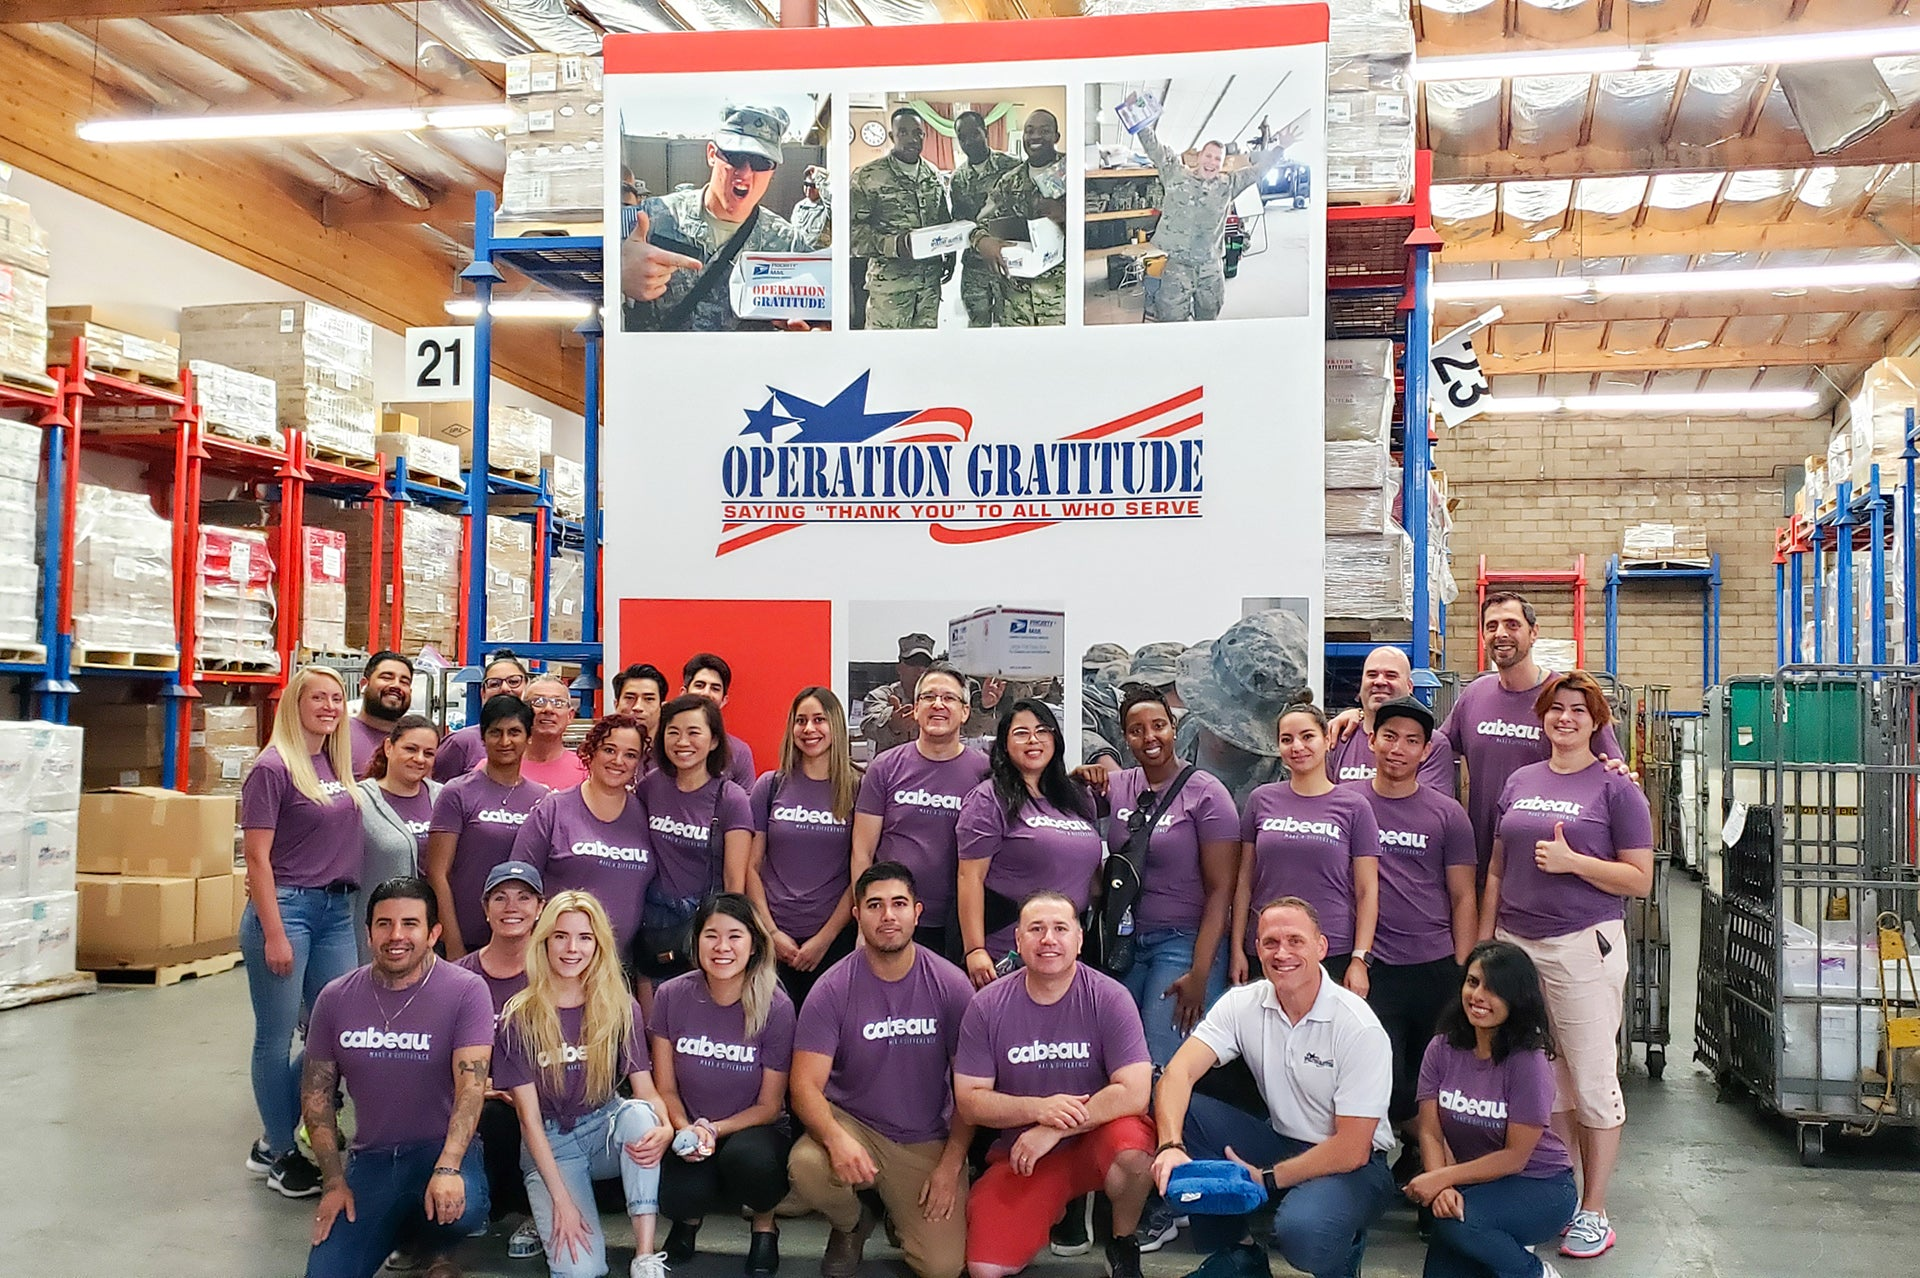 Cabeau Team photo at Operation Gratitude